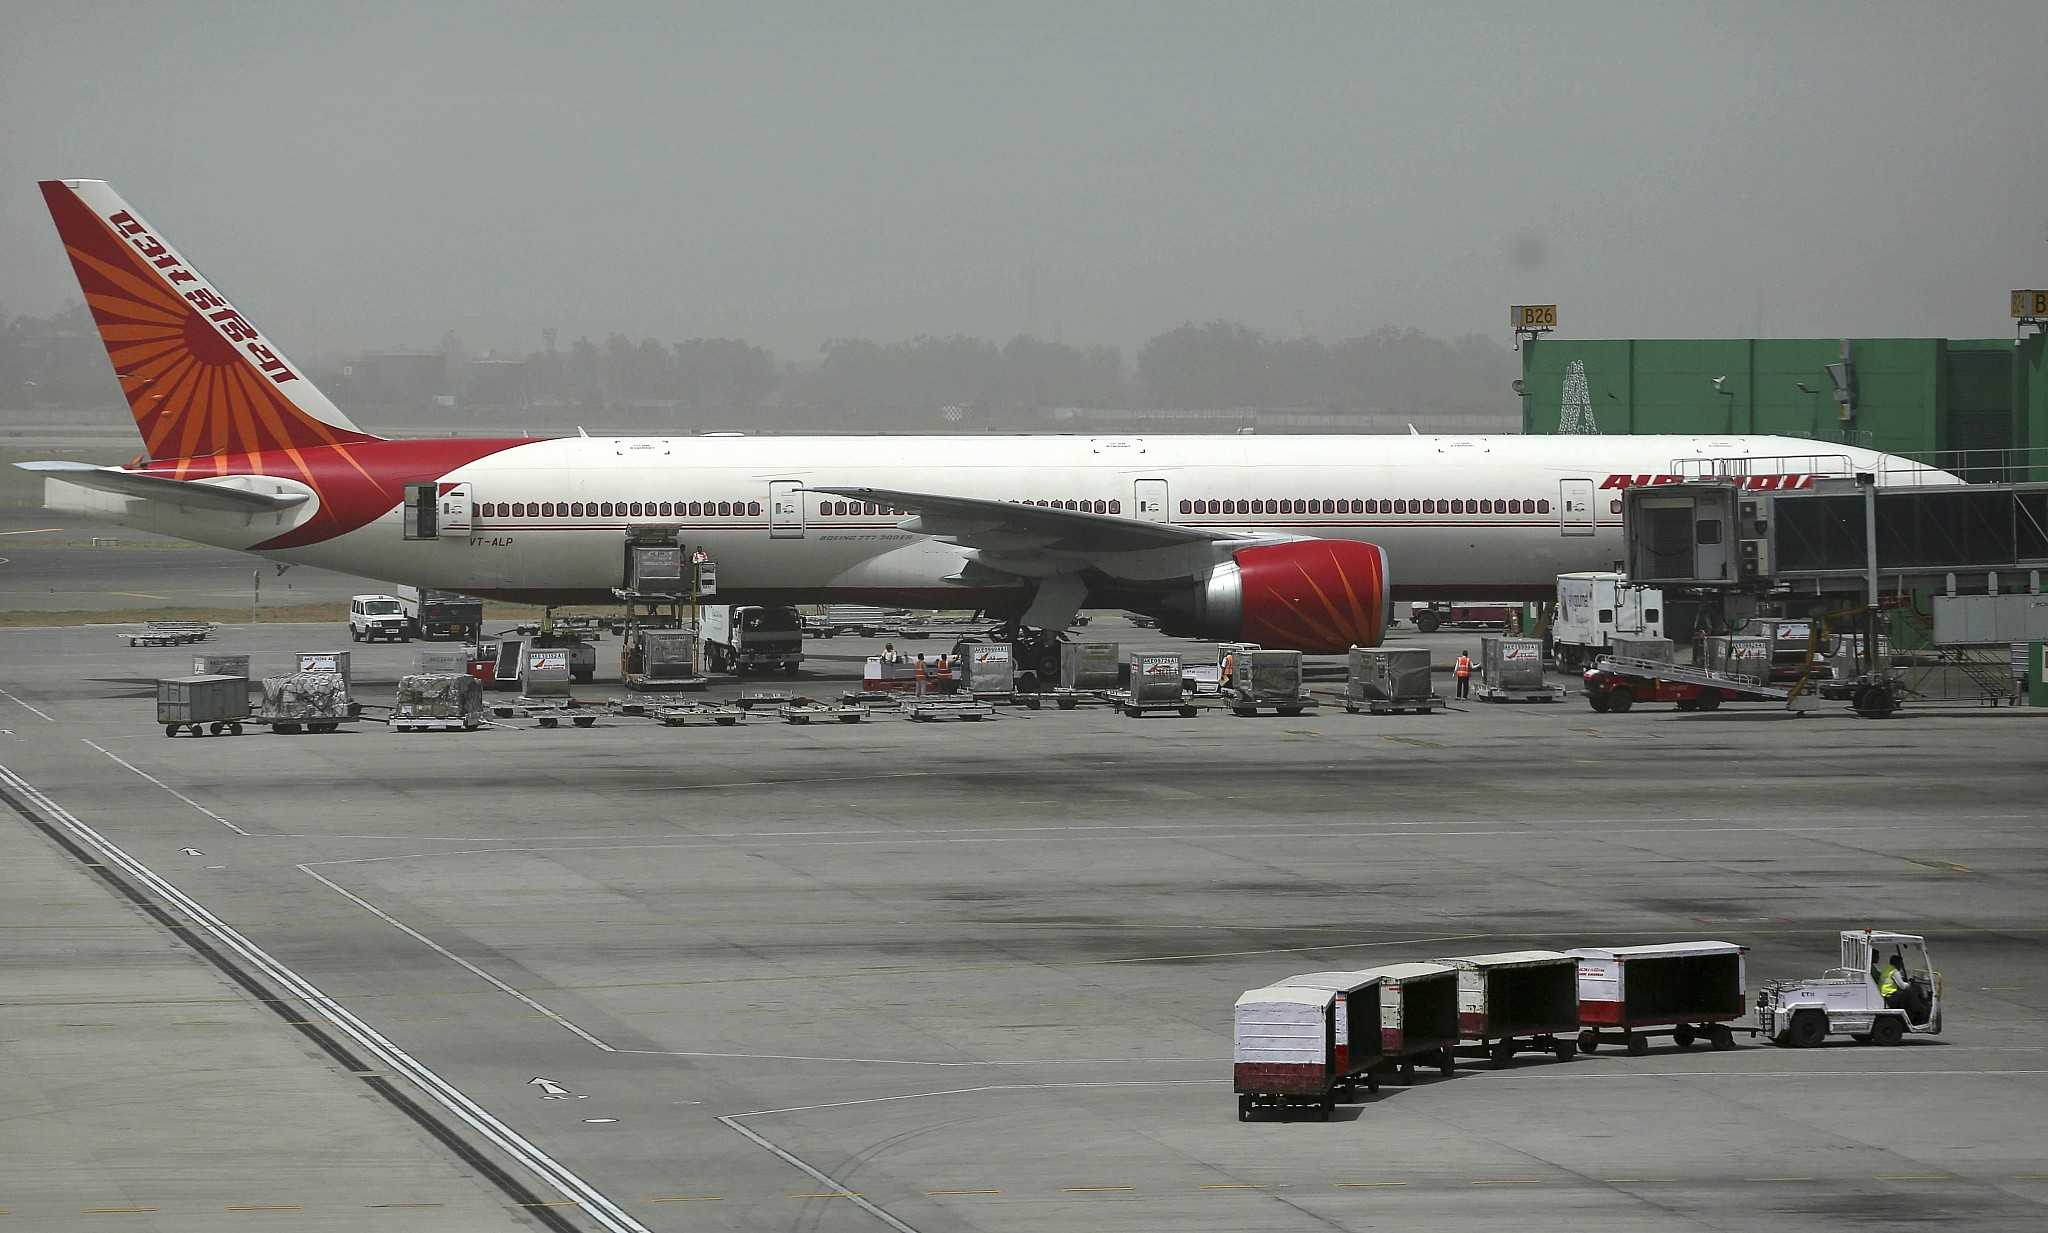 Air India denies receiving permission to fly to Israel over Saudi airspace